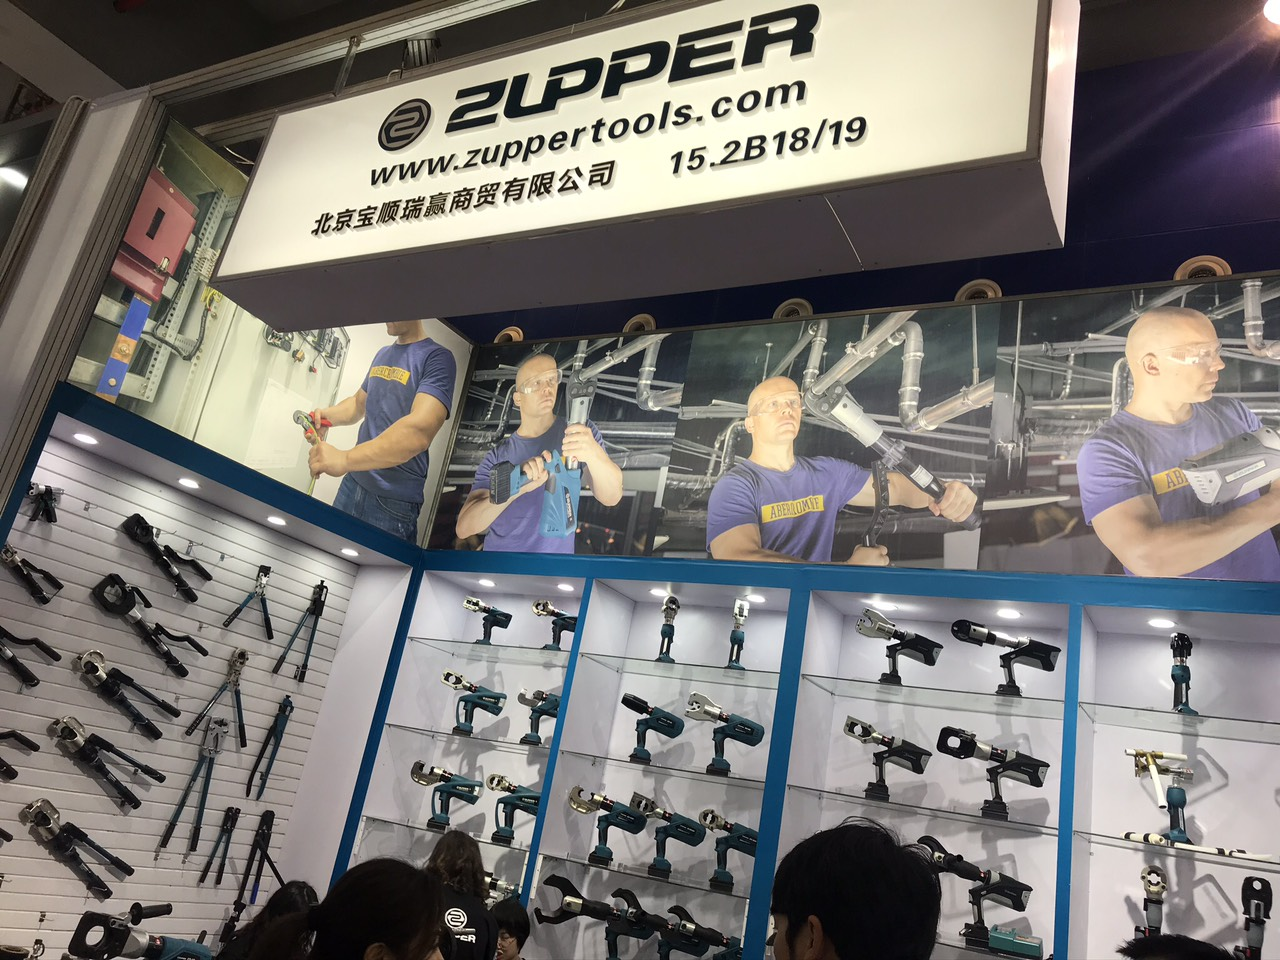 https://vhcorp.com.vn/upload/images/ZUPPER/zupper%20hydraulic%20tools.jpg